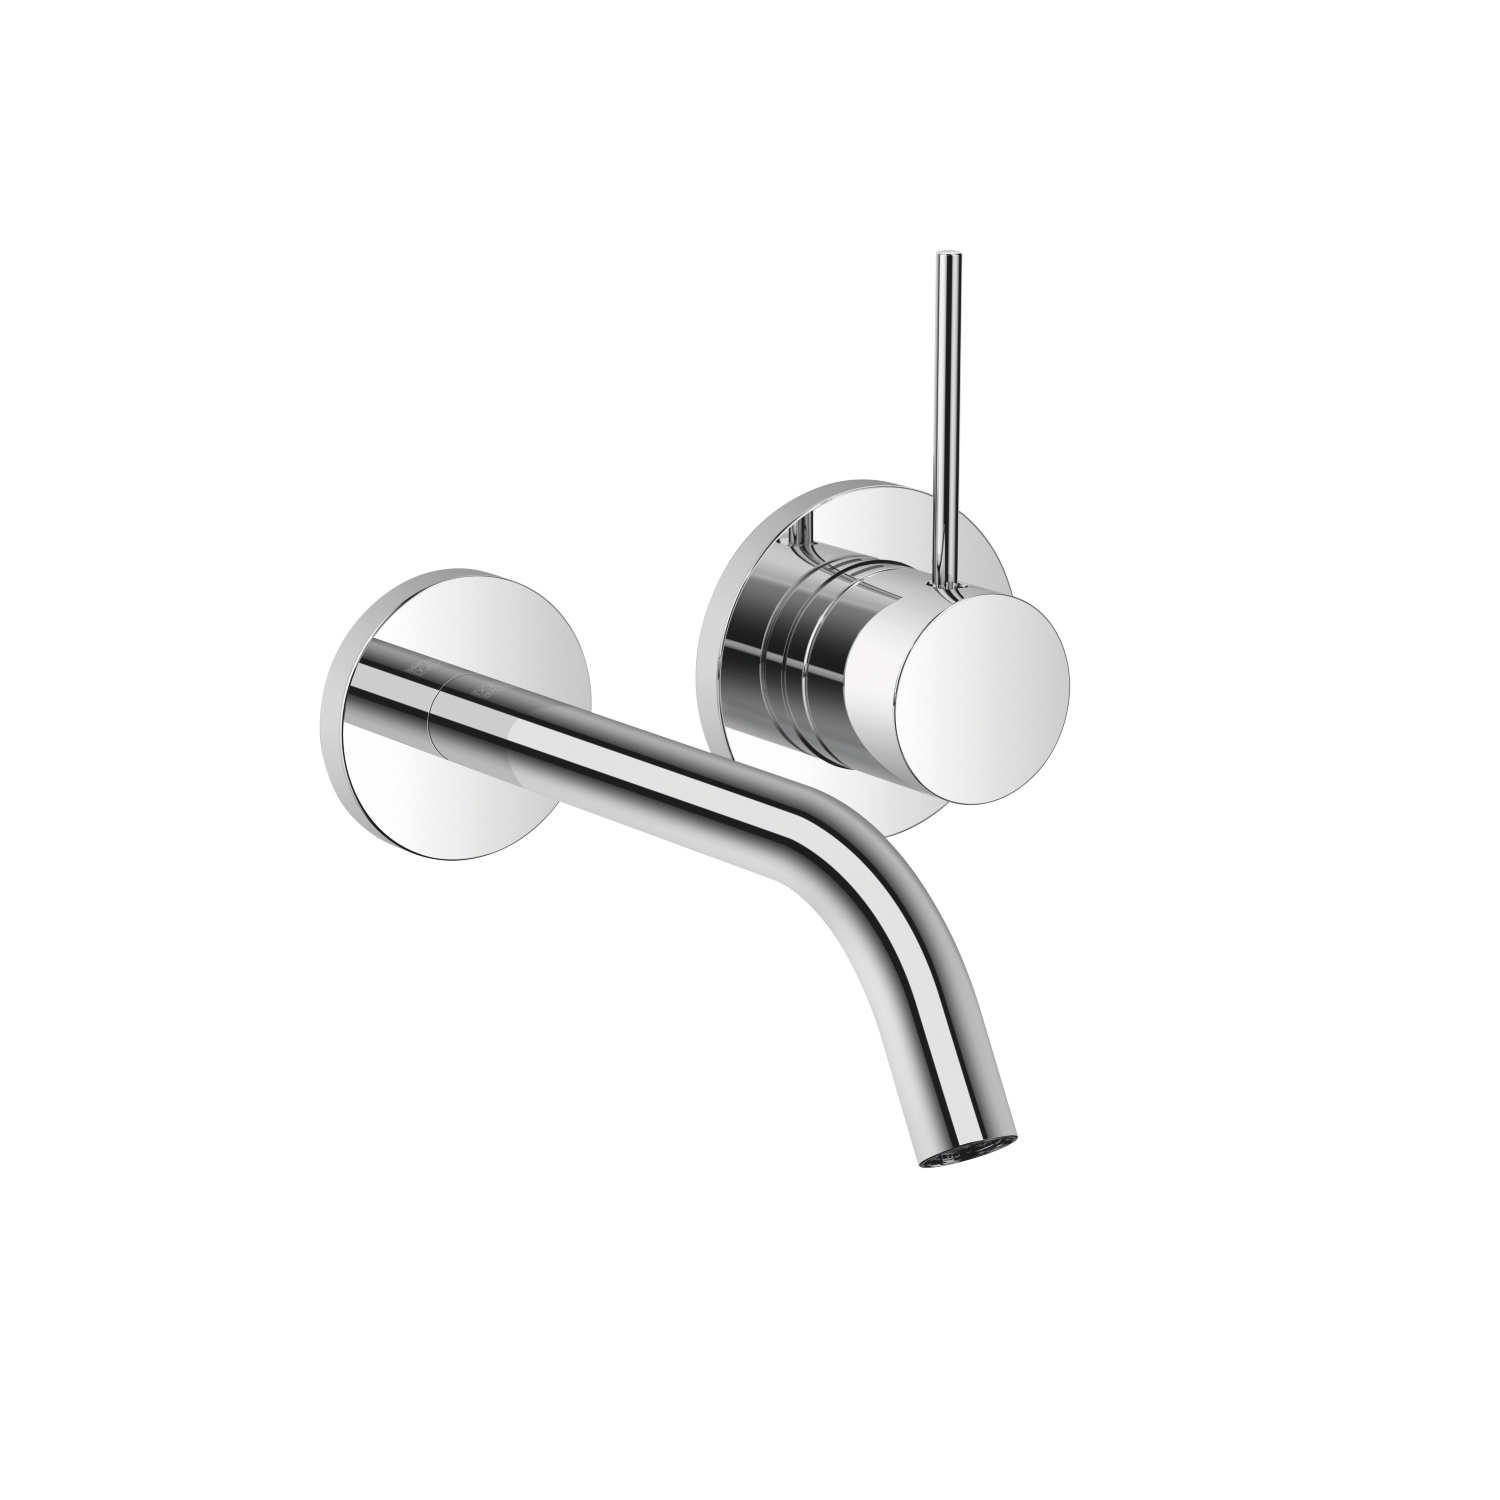 META SLIM Wall-mounted single-lever basin mixer without pop-up waste - polished chrome - 36 812 662-00